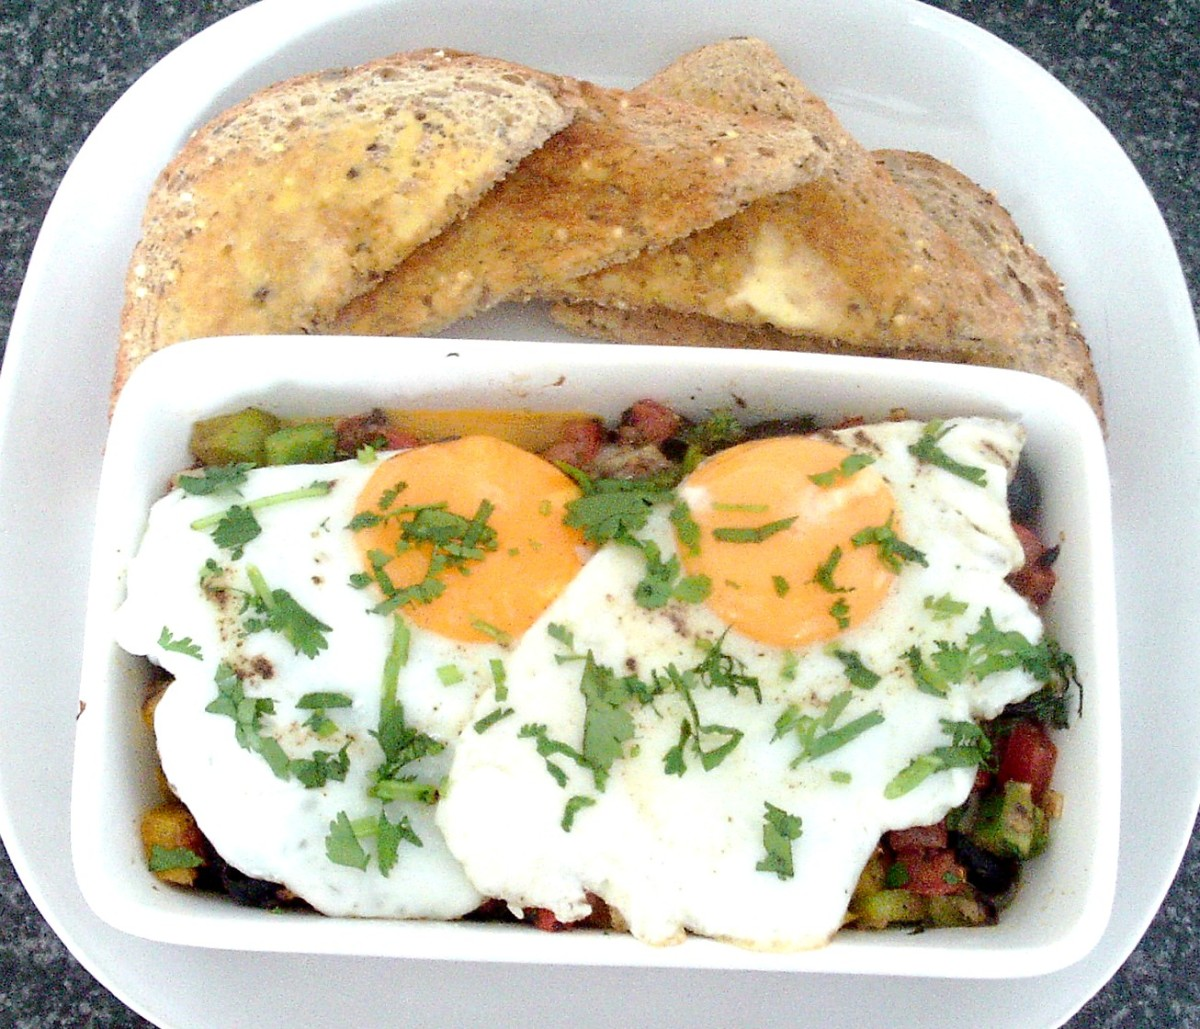 Hot and spicy fisherman's eggs served with toast